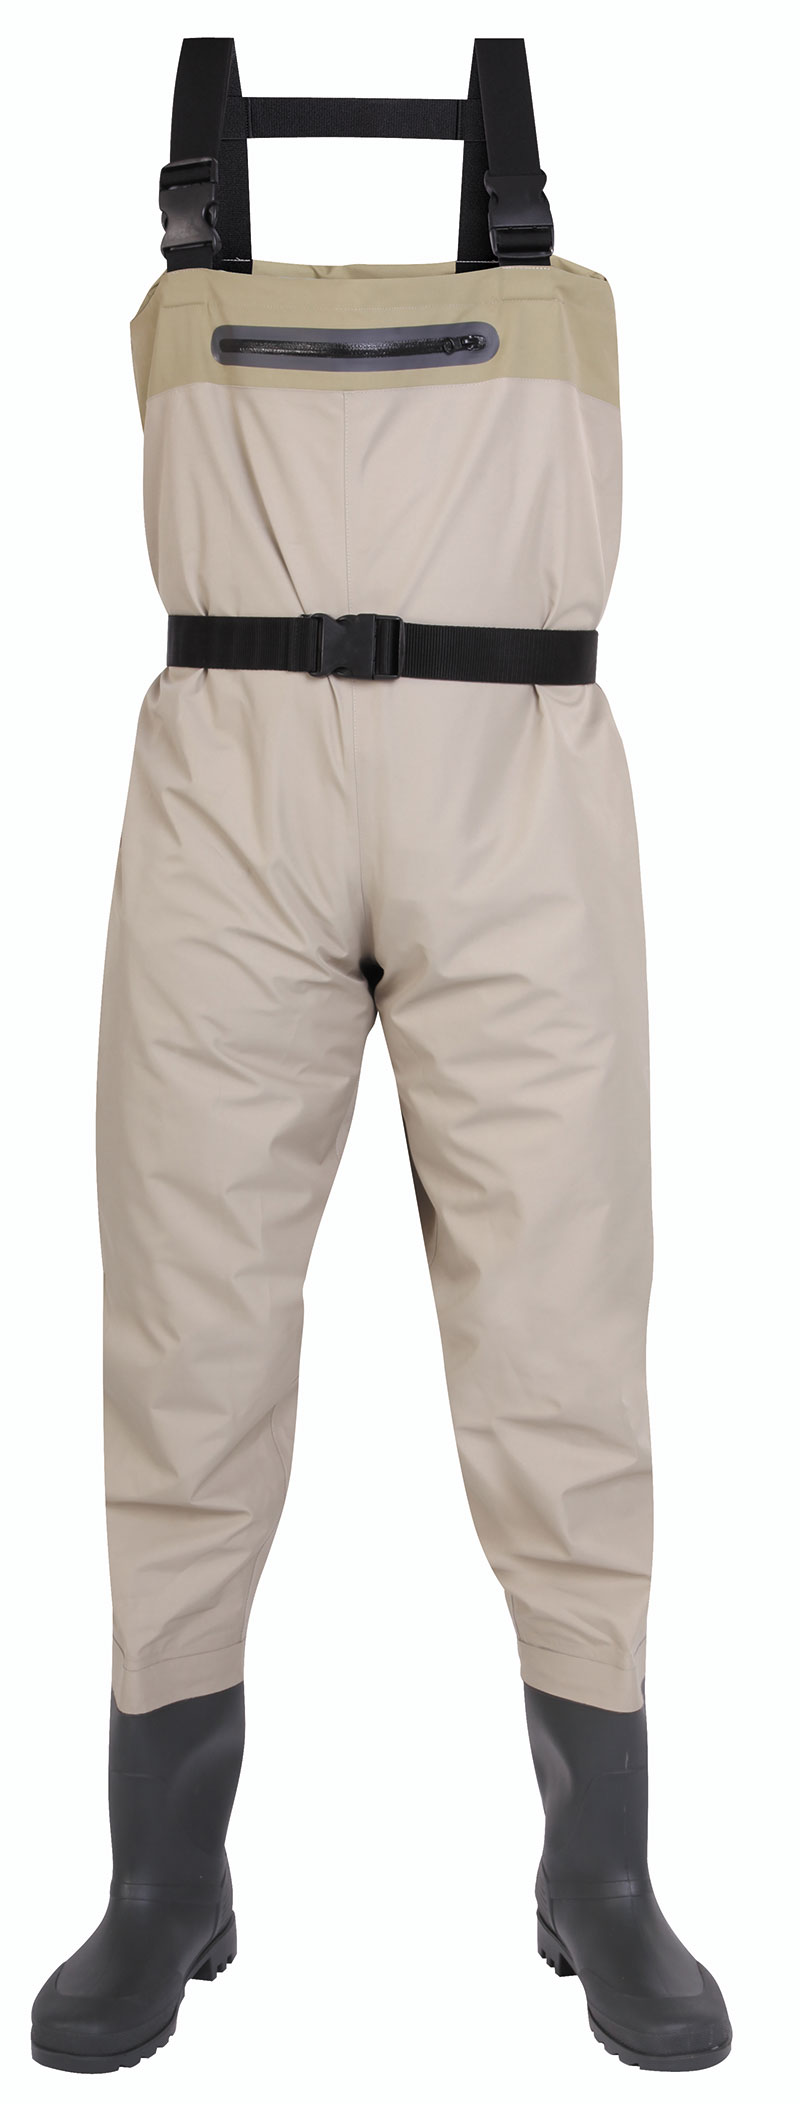 NORFIN Prsačky - waders with boots - vel.42